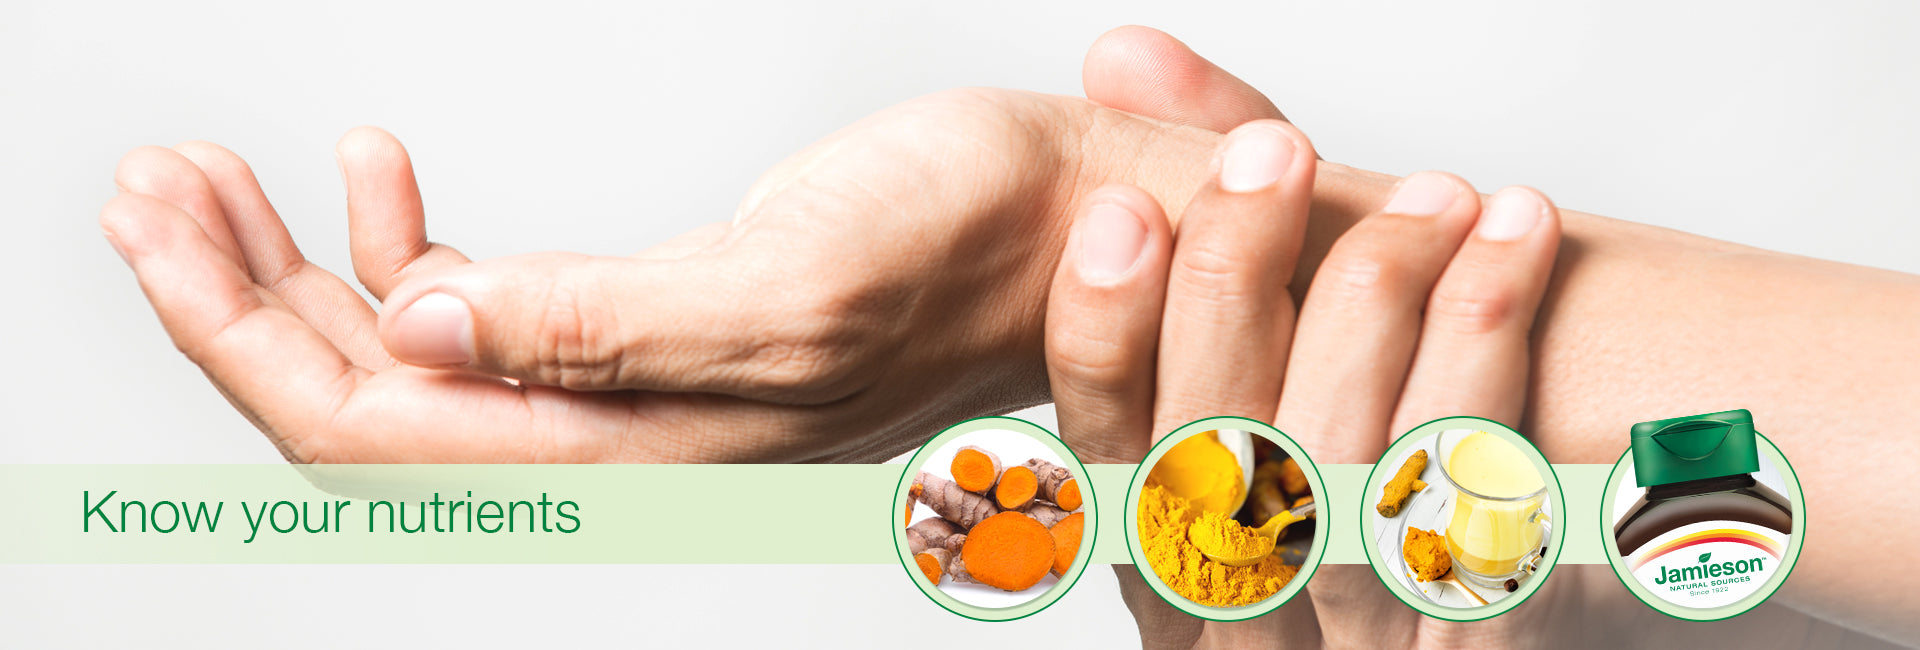 Know Your Nutrients: Turmeric